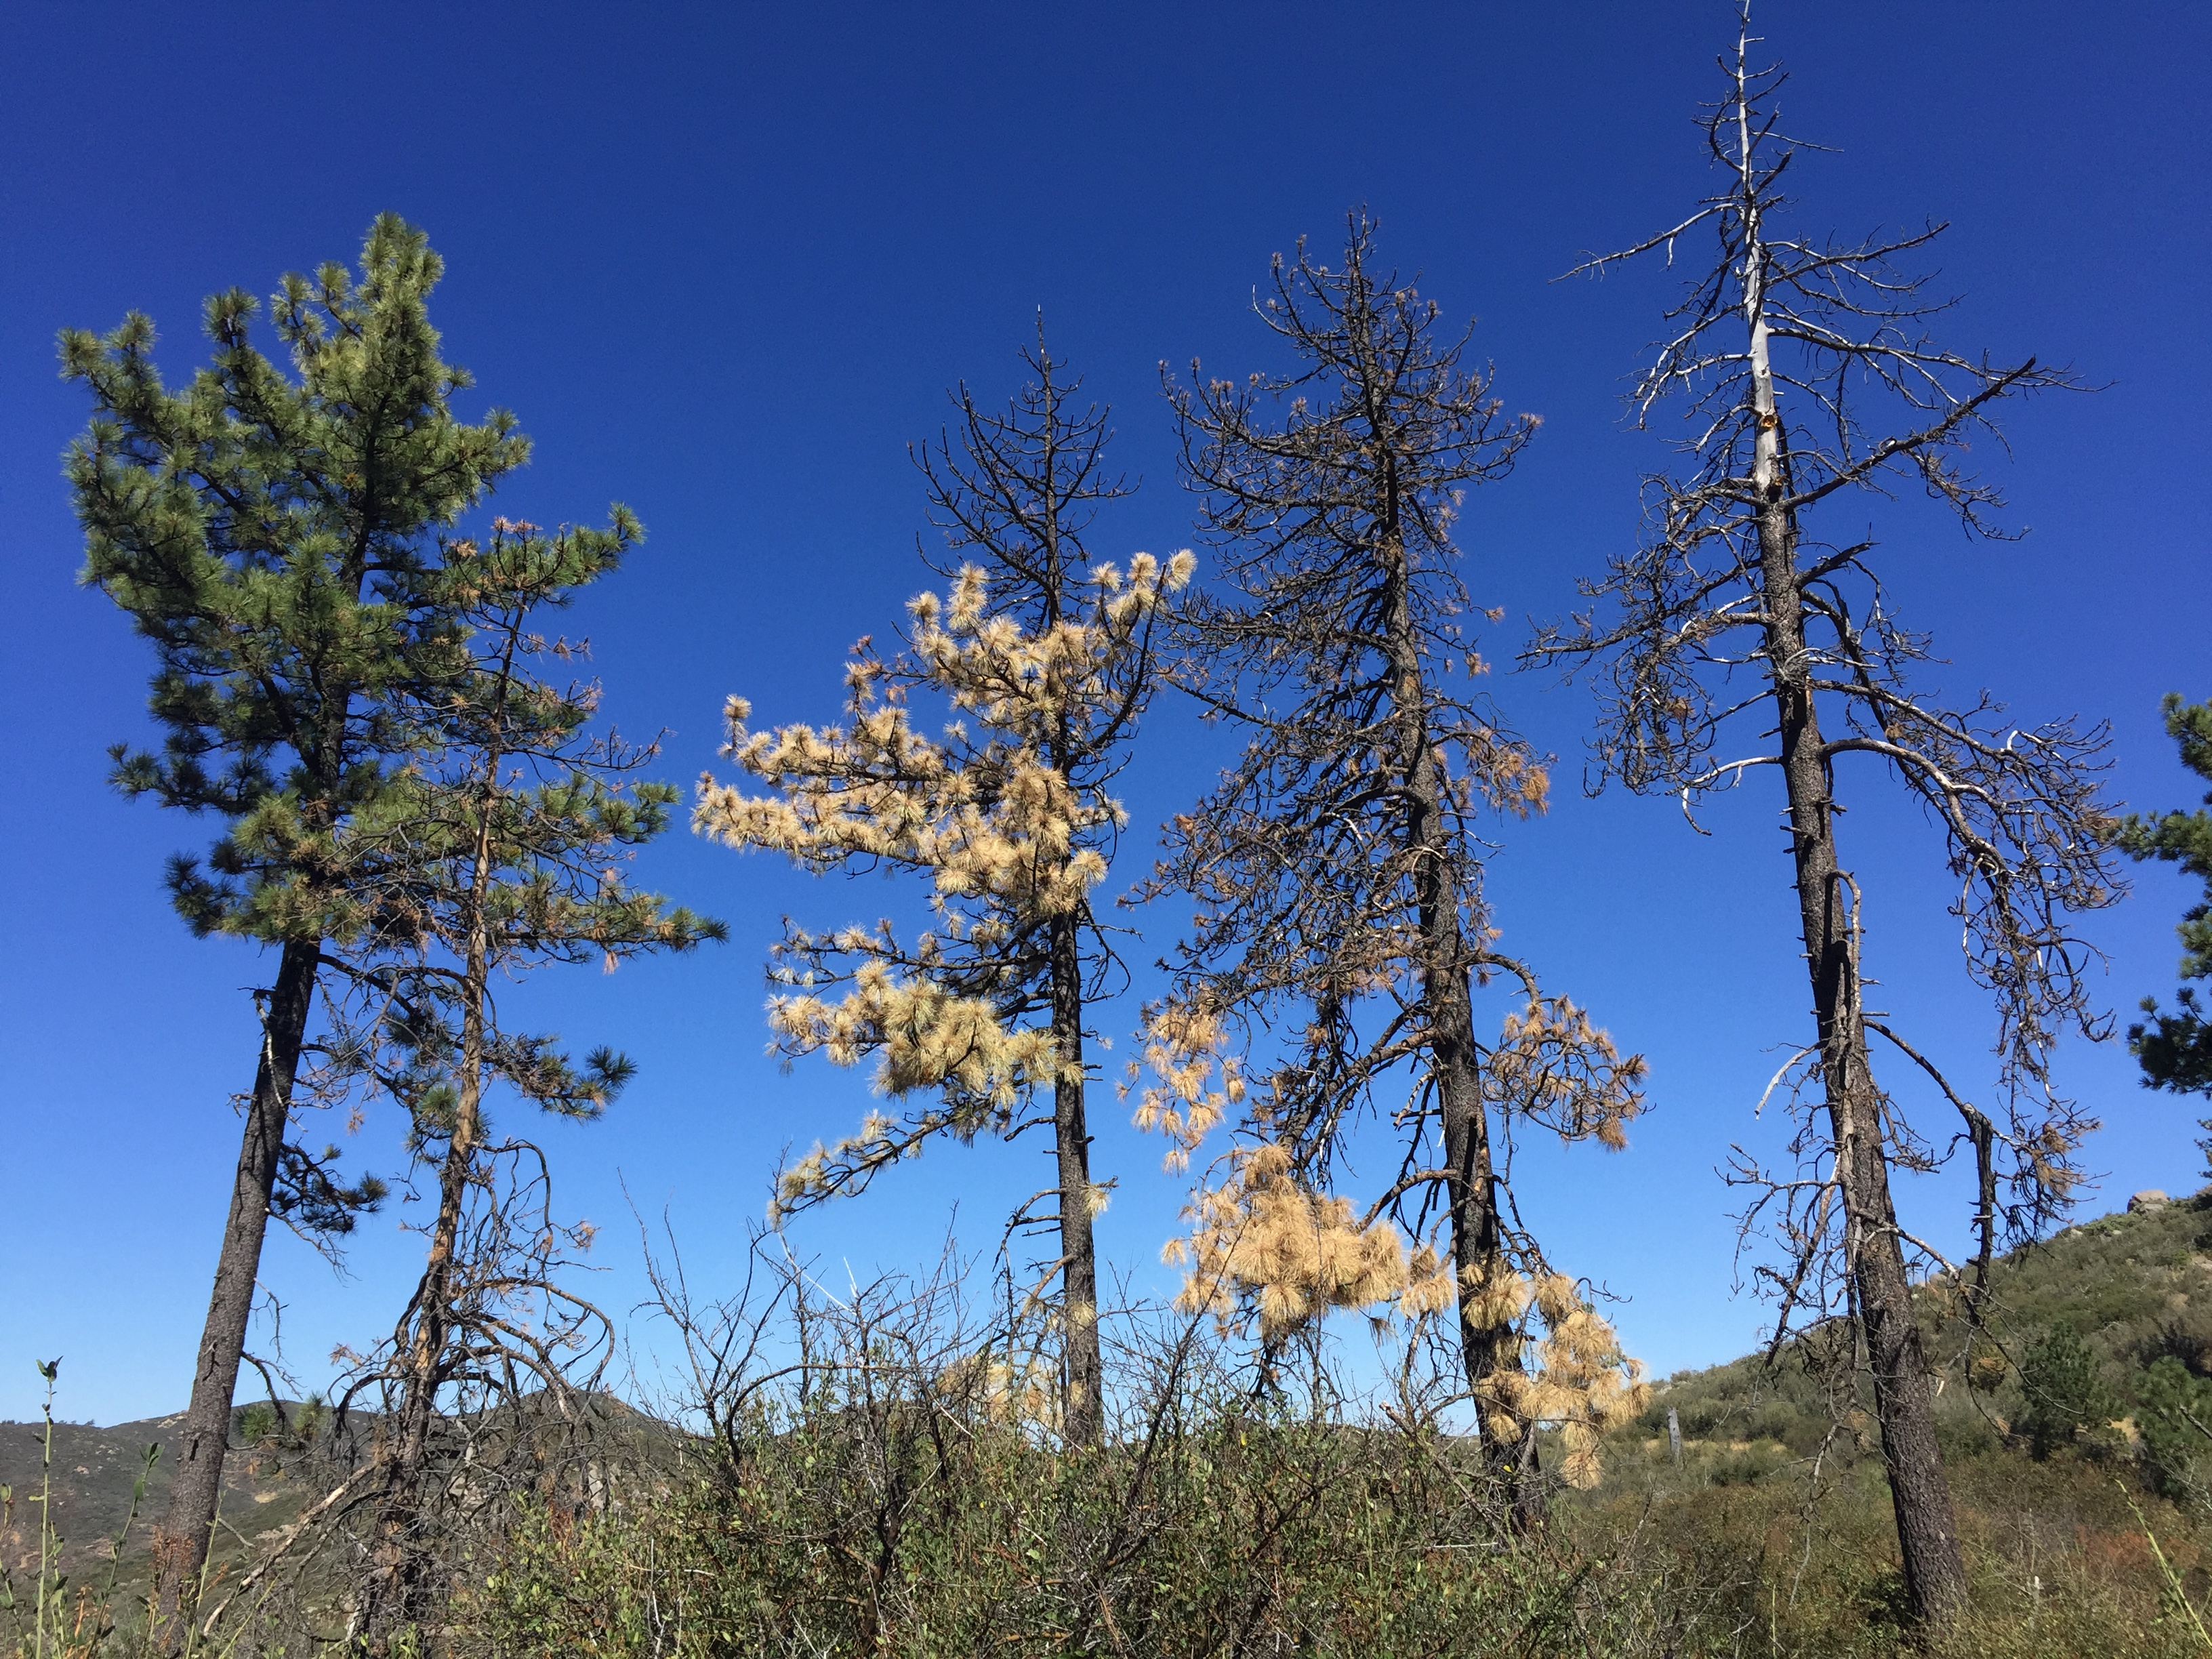 Three pine trees in the Mount Laguna area show the various stages of the drought.